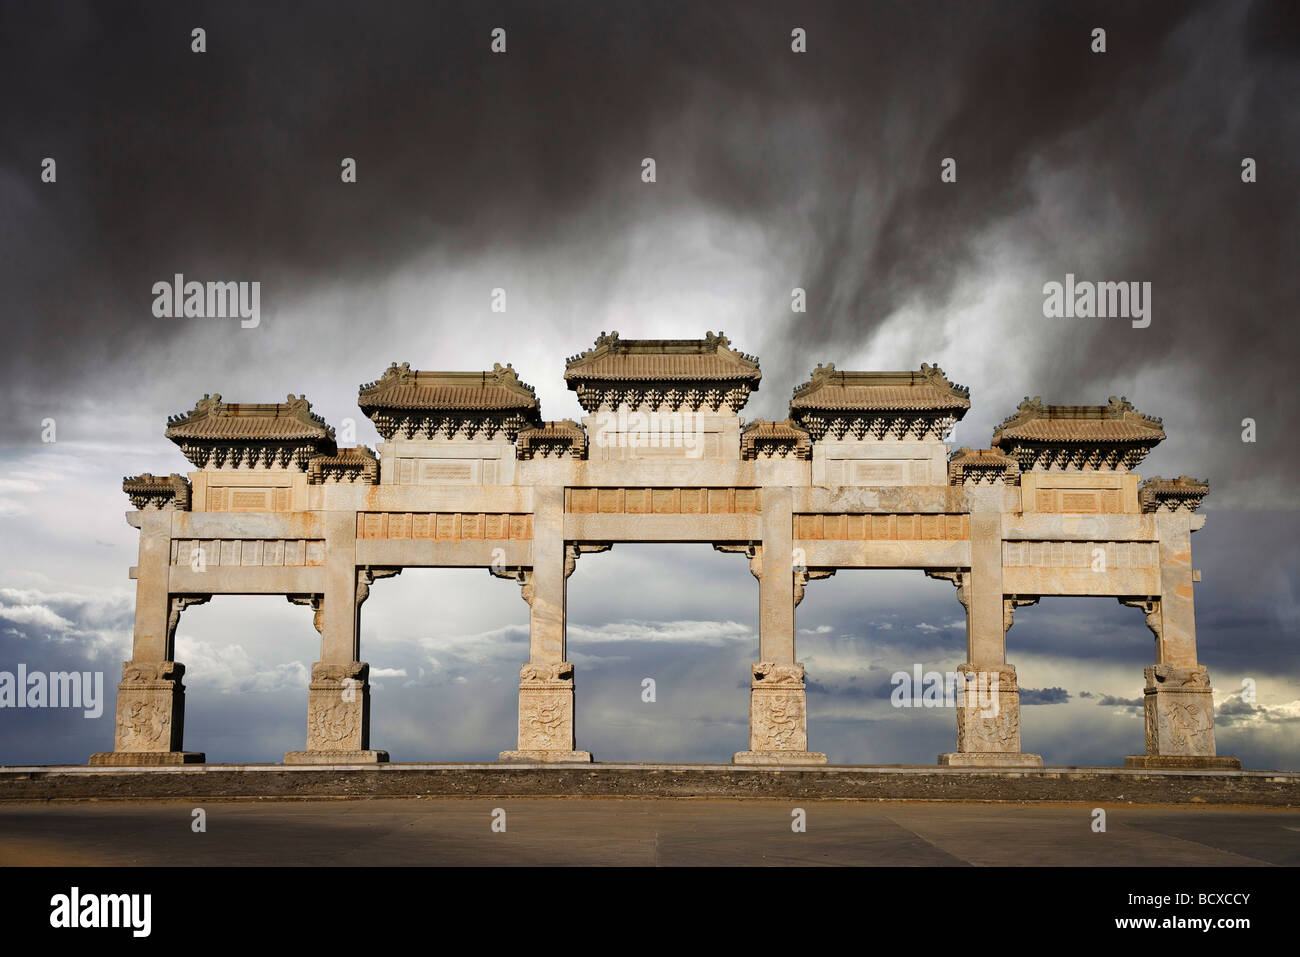 Eastern Qing Tombs,Hebei Province,China - Stock Image